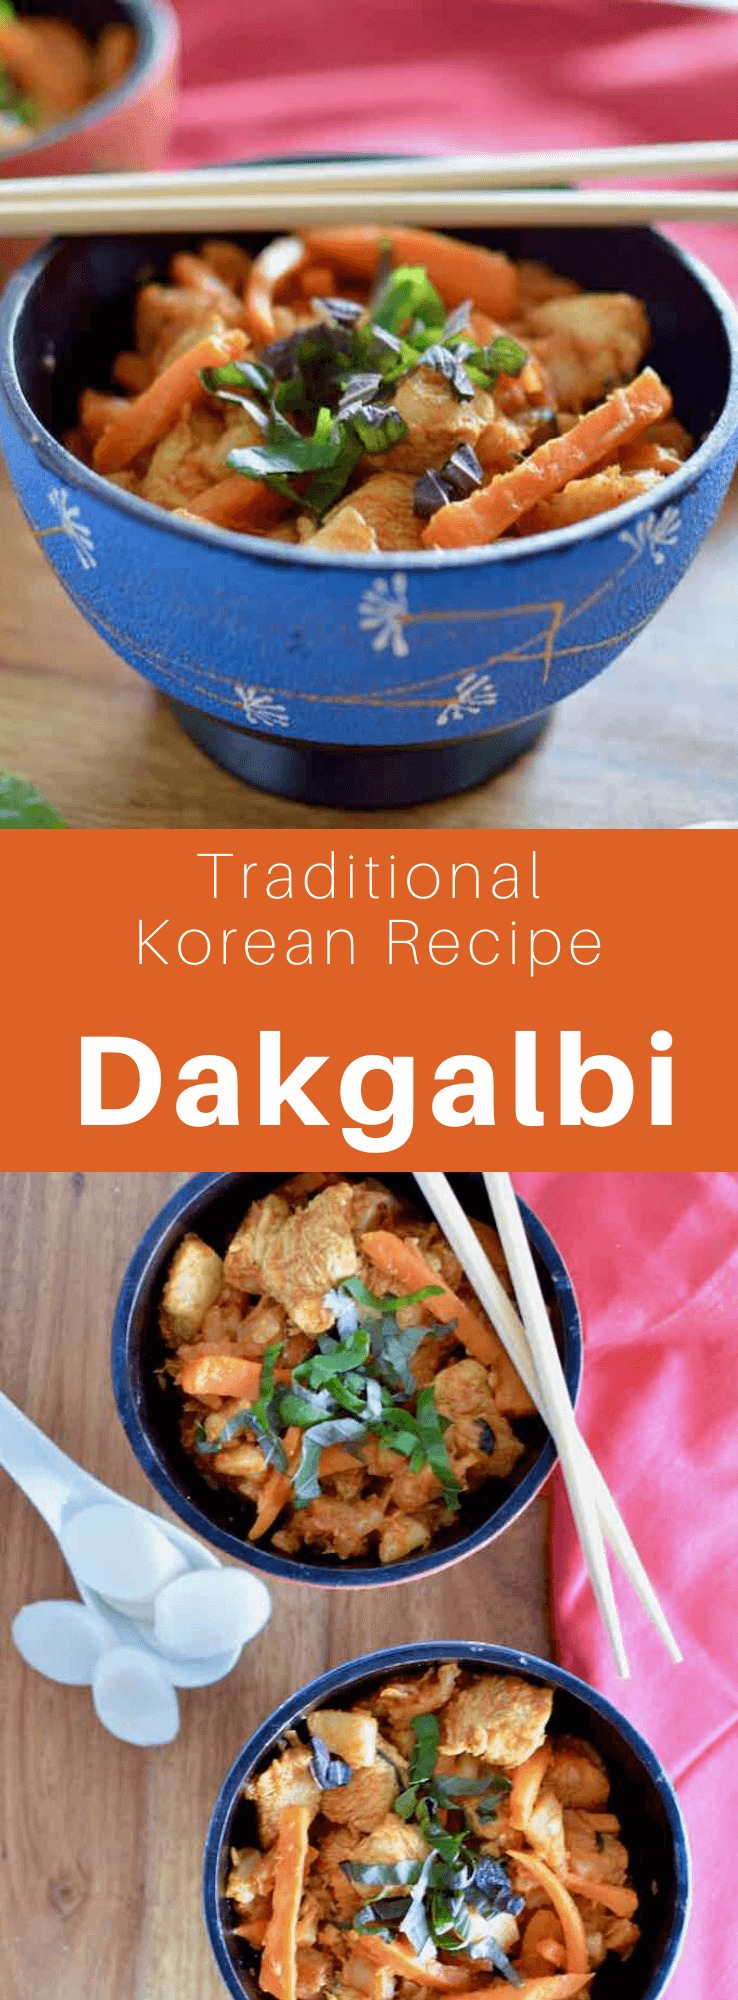 Dak galbi or dakgalbi (닭 갈비), is a Korean dish consisting of spicy chicken sautéed in a sauce made from gochujang, with sweet potato, cabbage, shiso leaves, green onions, tteok and other ingredients. #KoreanFood #KoreanRecipe #KoreanCuisine #WorldCuisine #196flavors